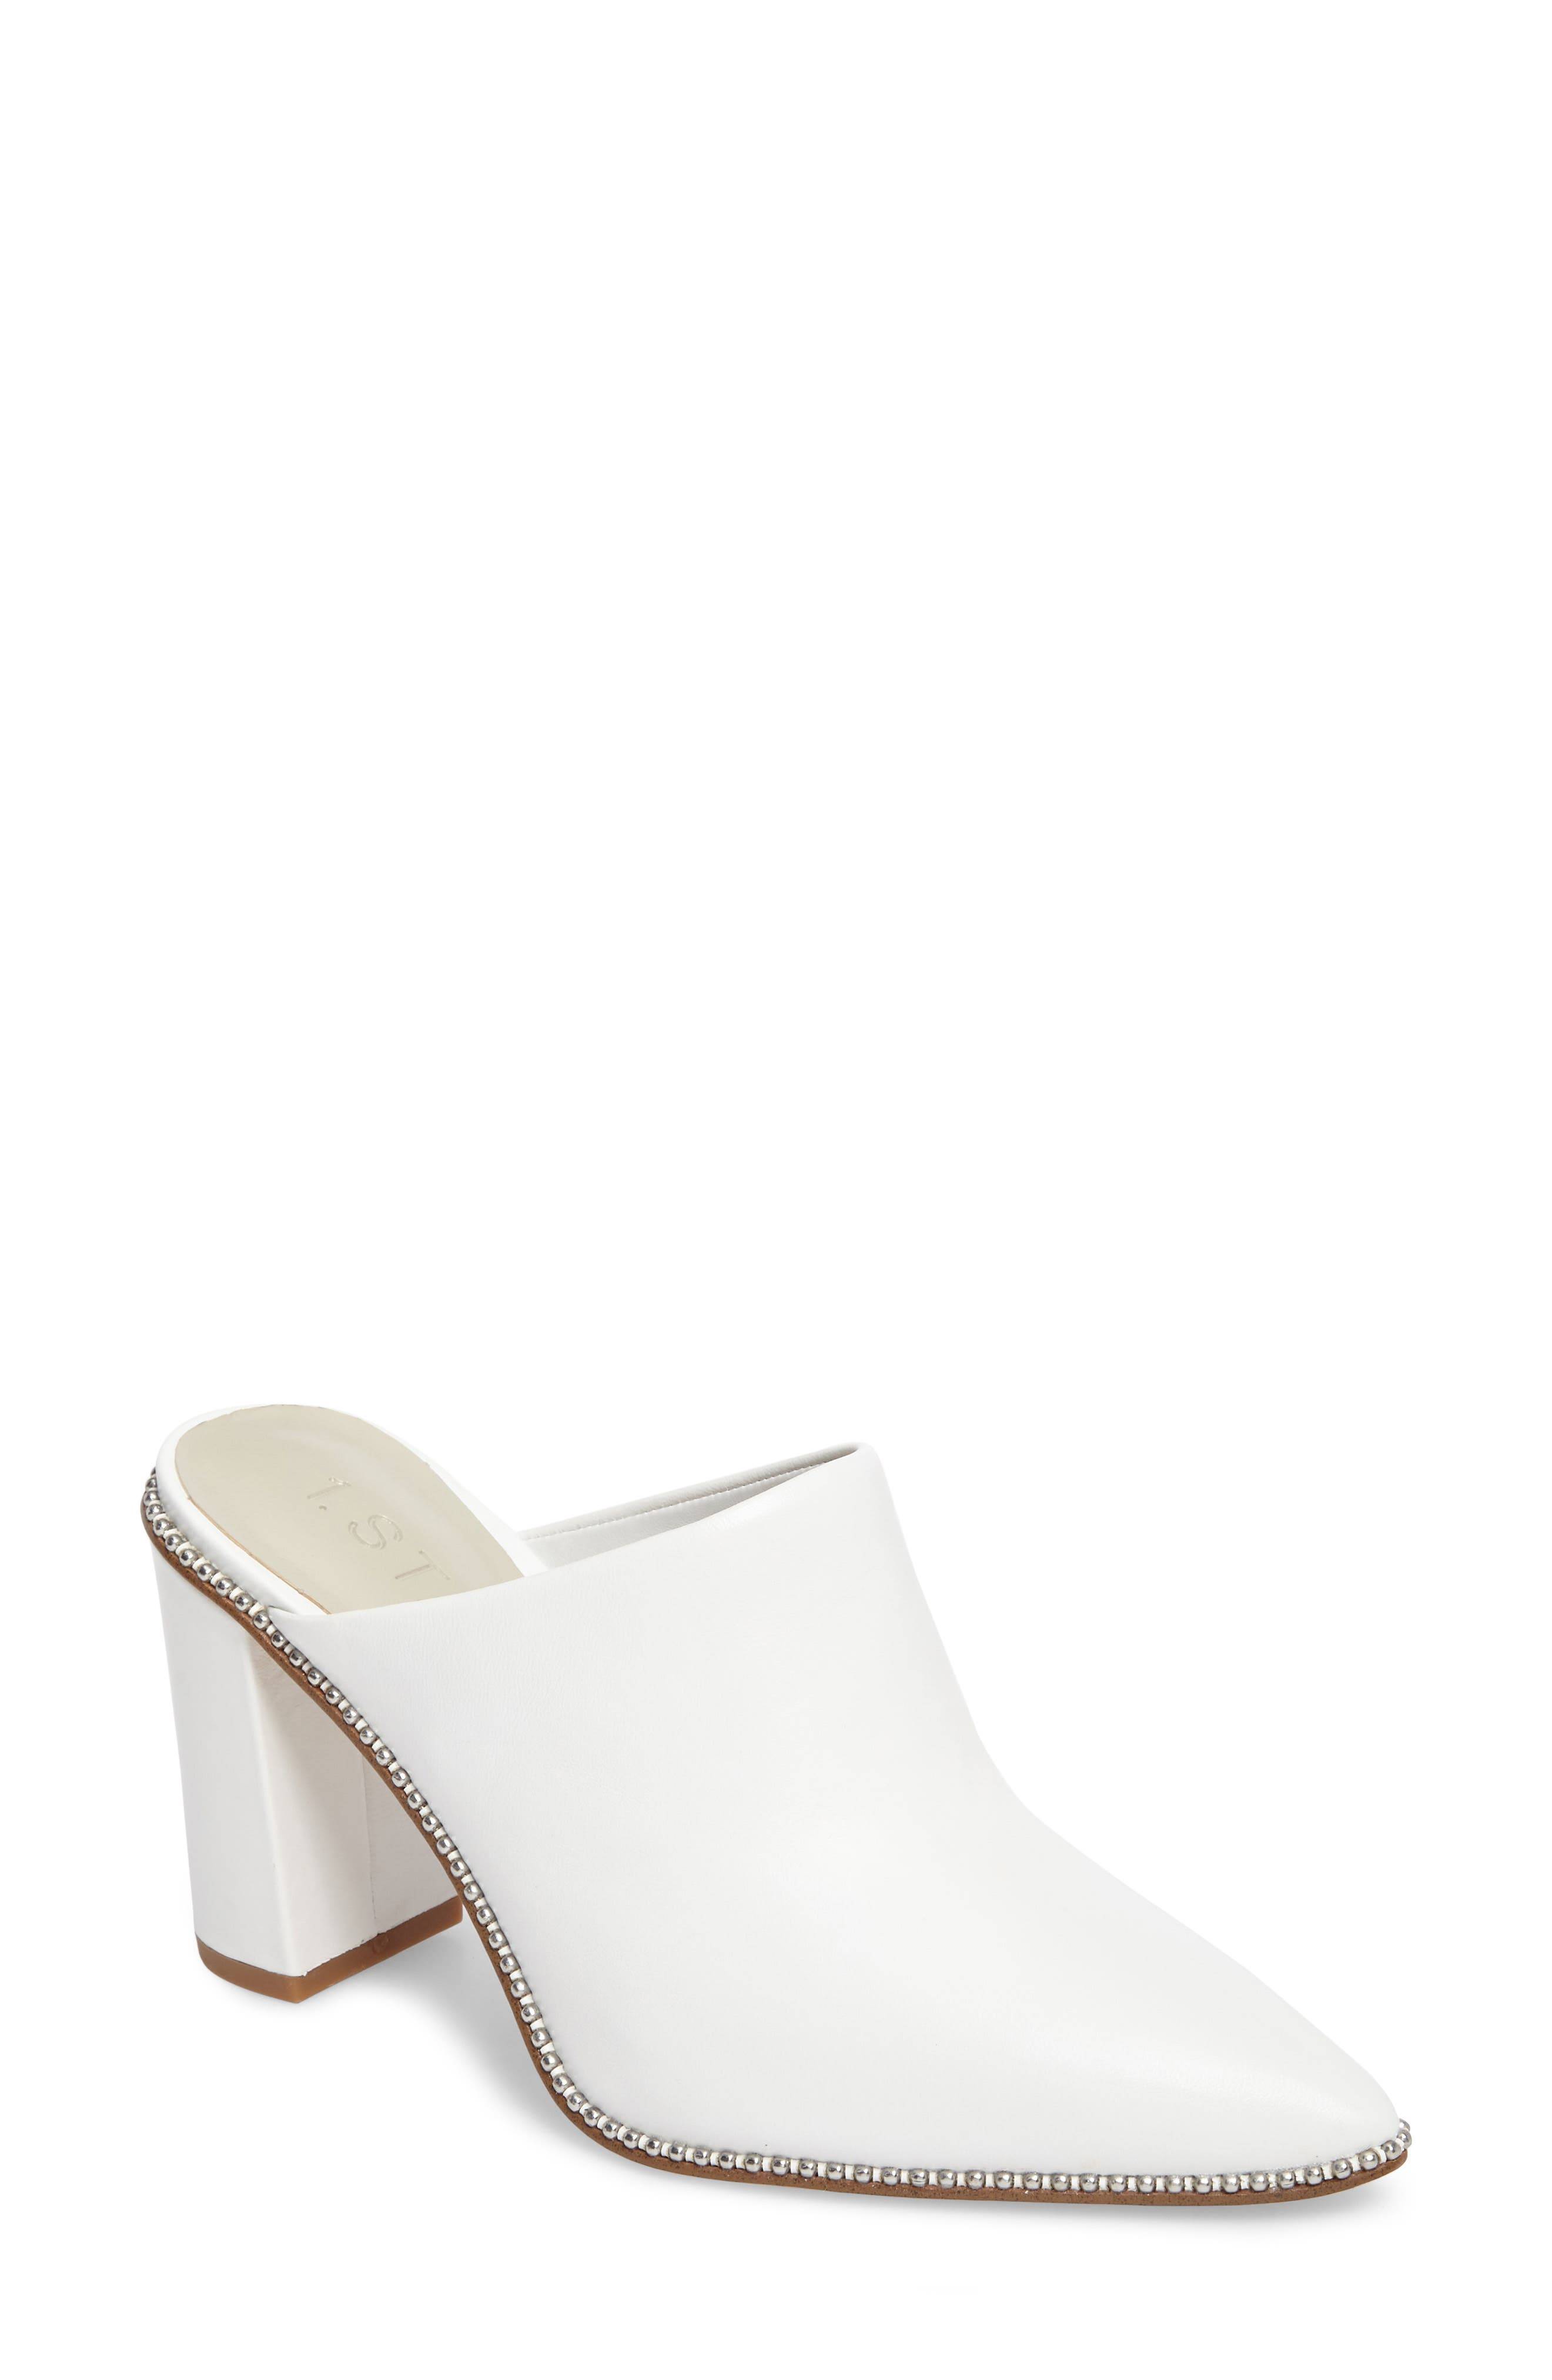 Alternate Image 1 Selected - 1.STATE Relle Mule (Women)